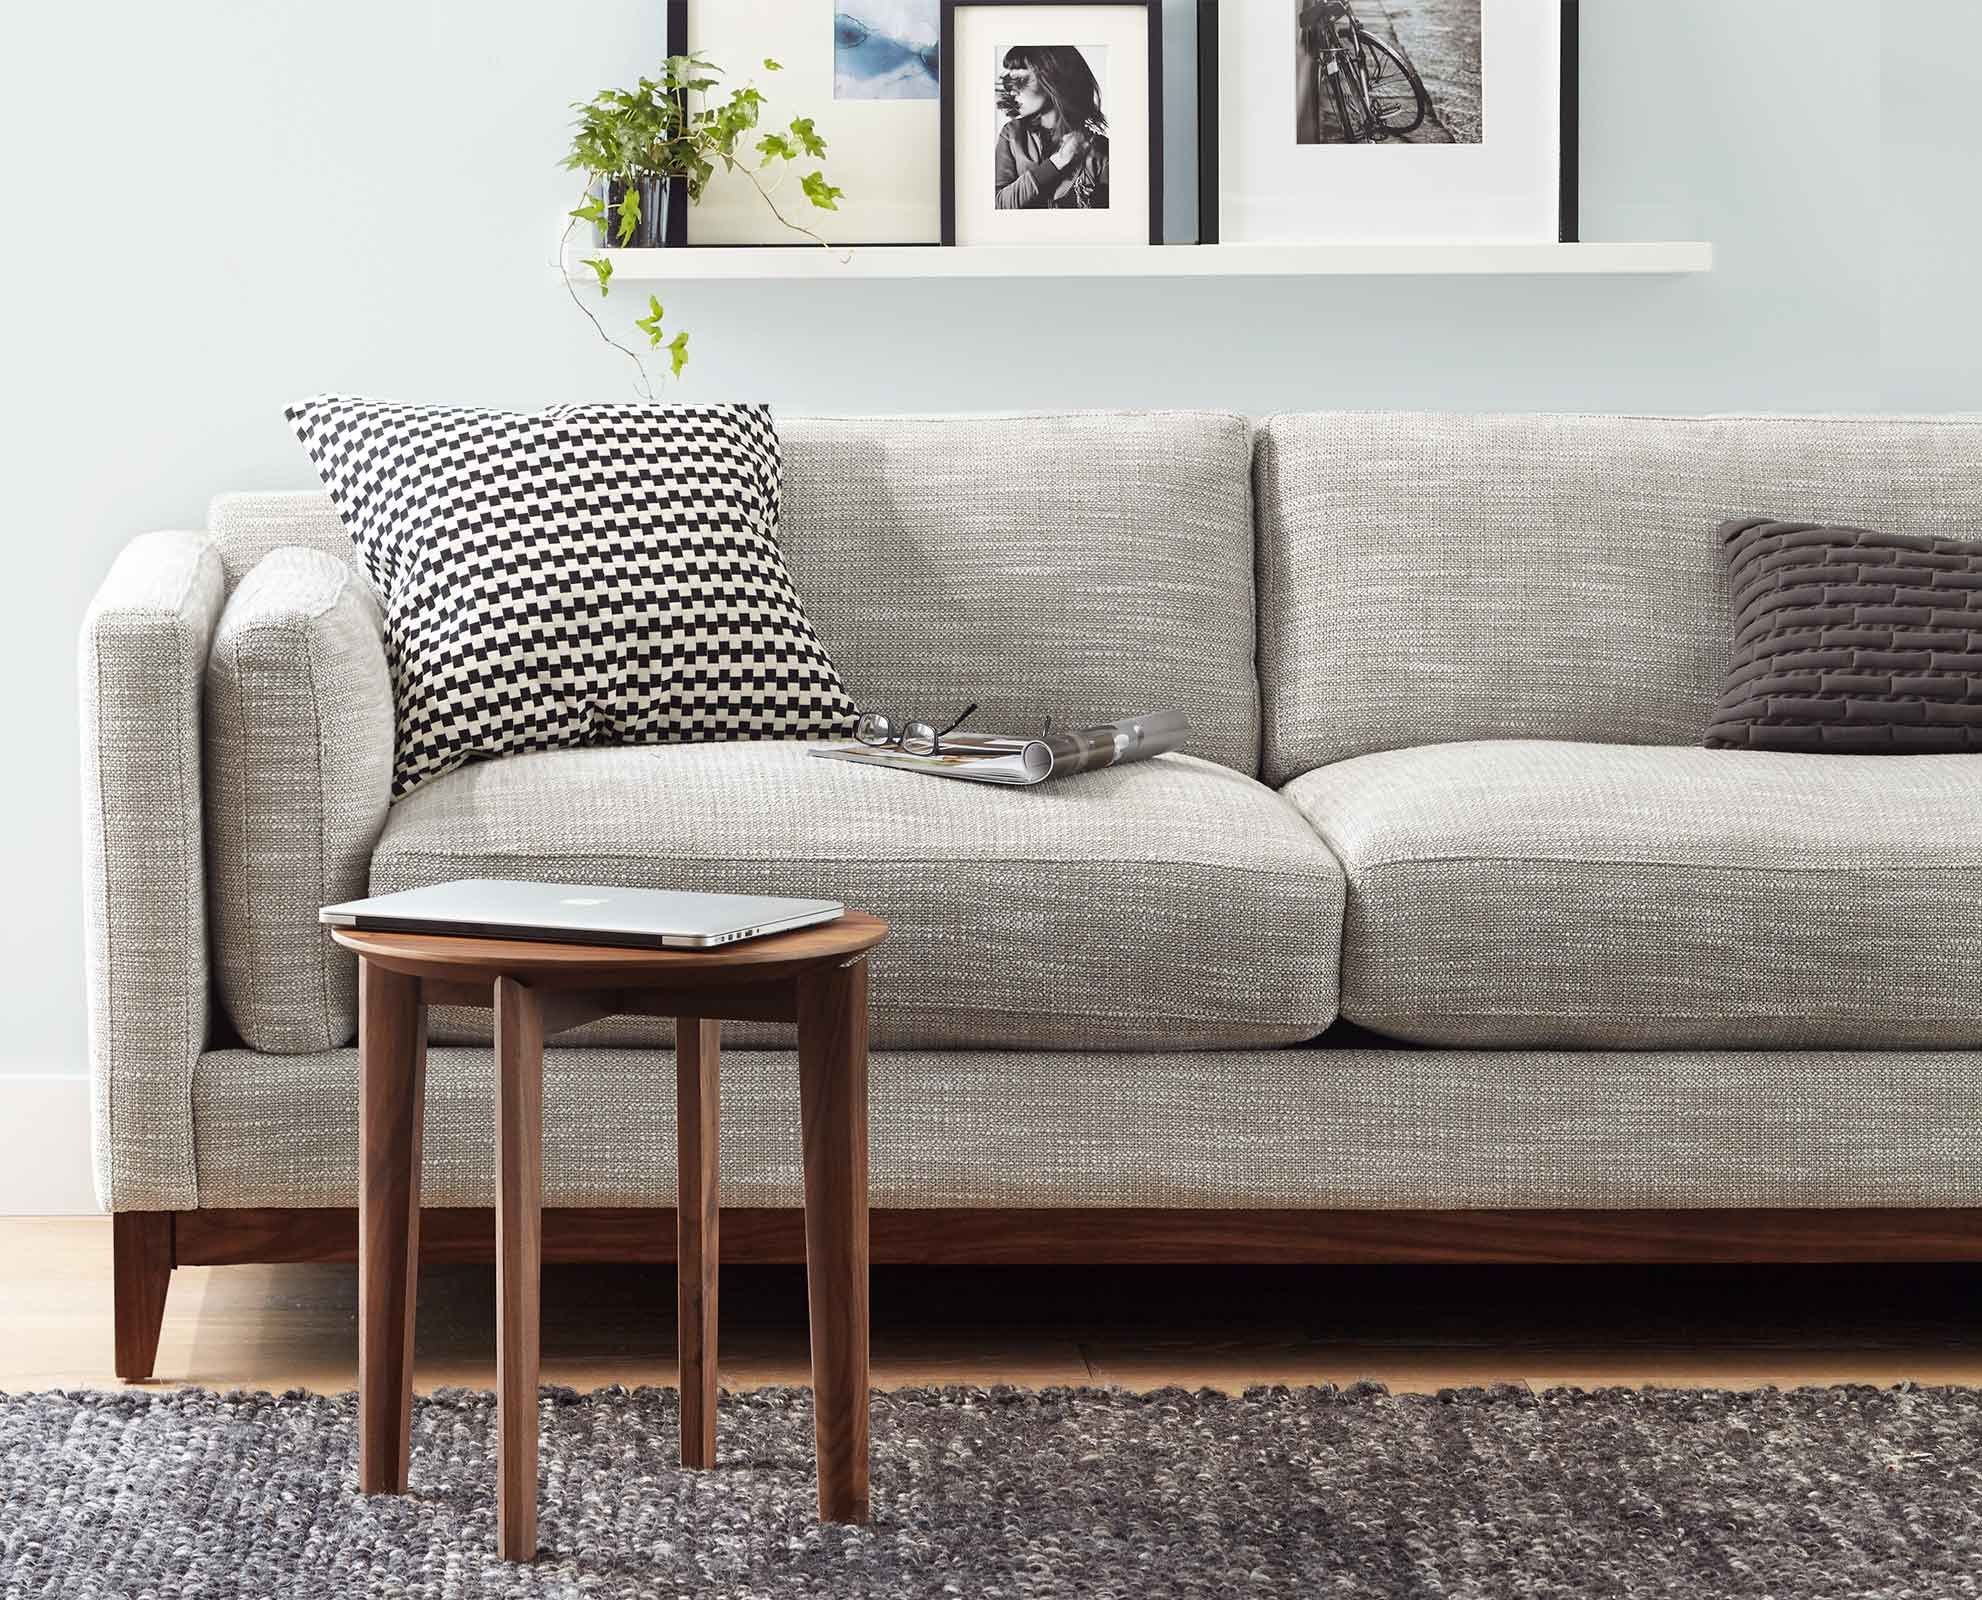 The Gabriel Sofa From Scandinavian Designs Shows Off Modern Angles With The Full Americ Scandinavian Sofa Design Scandinavian Furniture Design Couch Upholstery